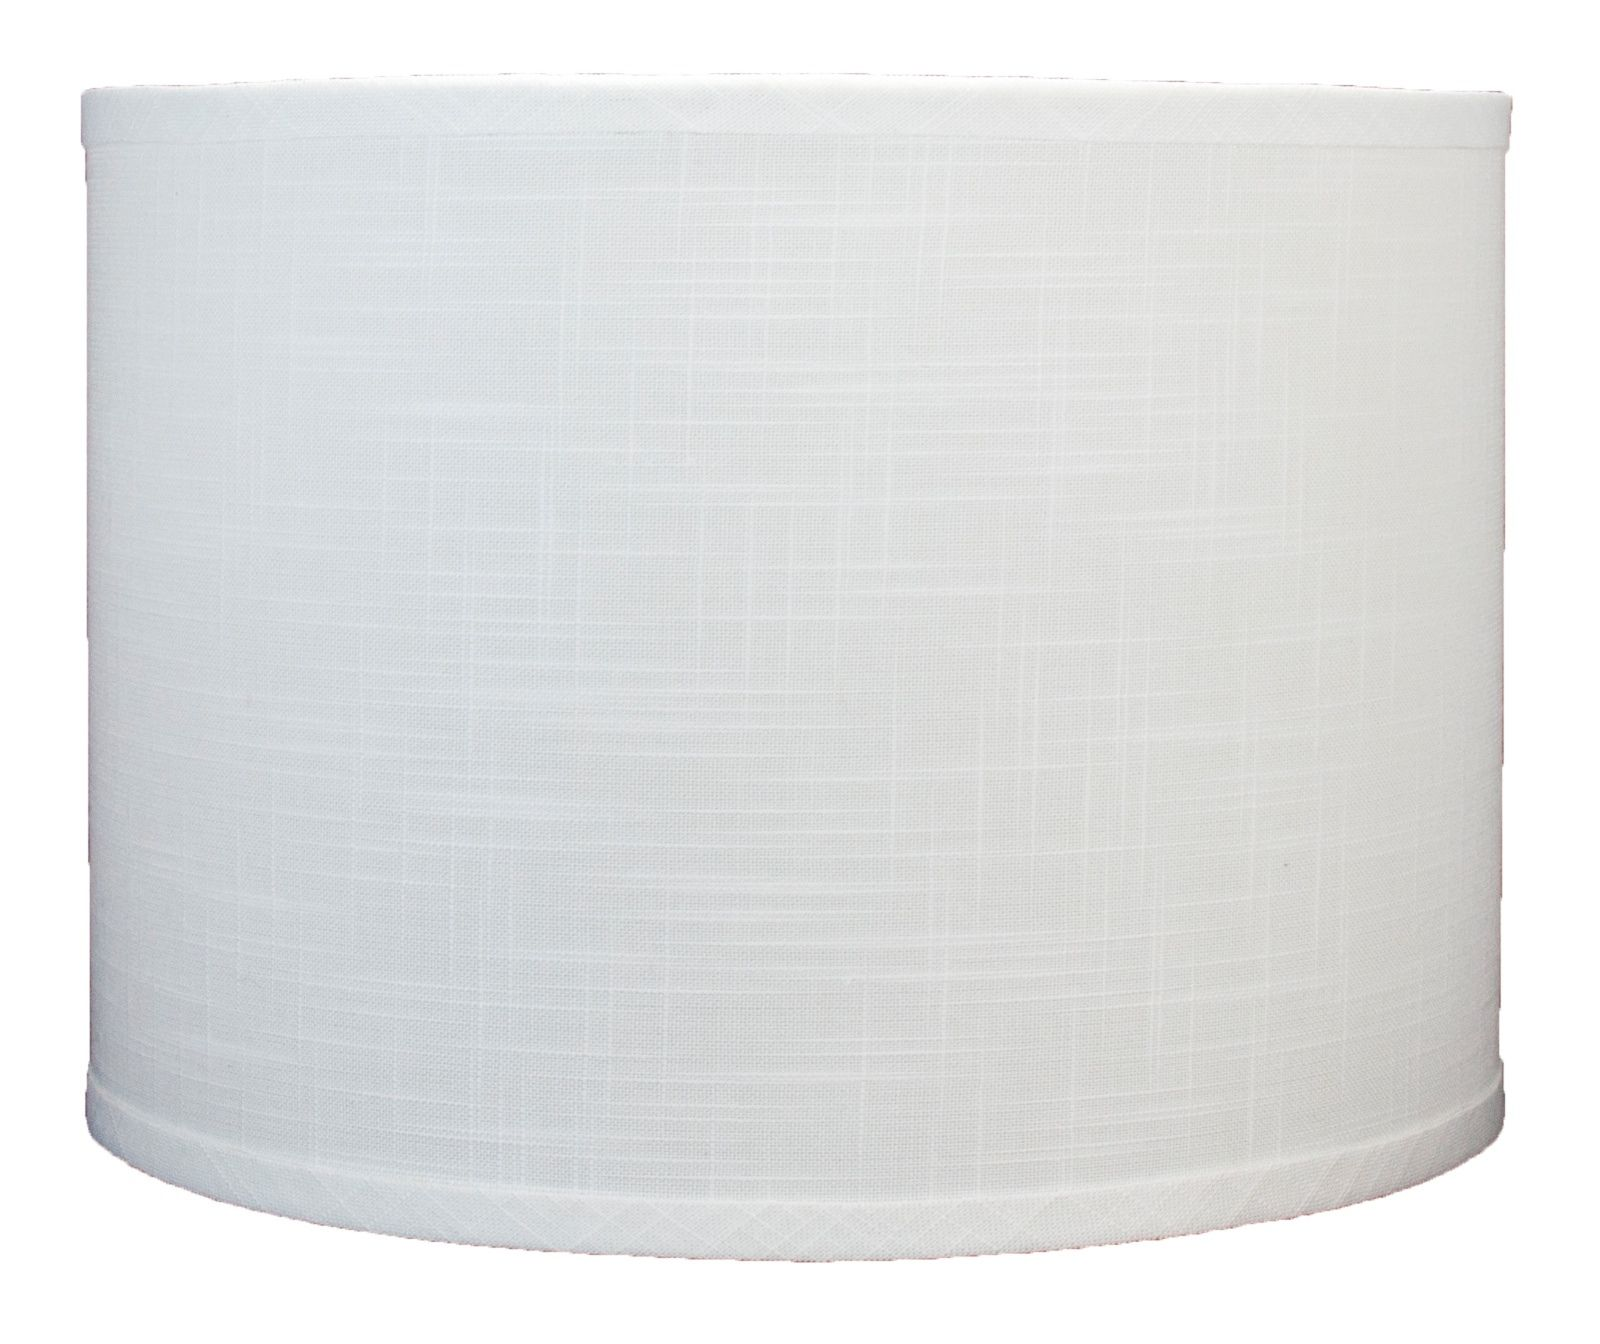 """I chose these simple, straight shades for a more modern look.  You can find lamp shades at many local home decor shops, hardware stores,  or online. I got these 12x12x10 """"off-white"""" linen shades from Urbanest Living  for $28.99 each  ."""